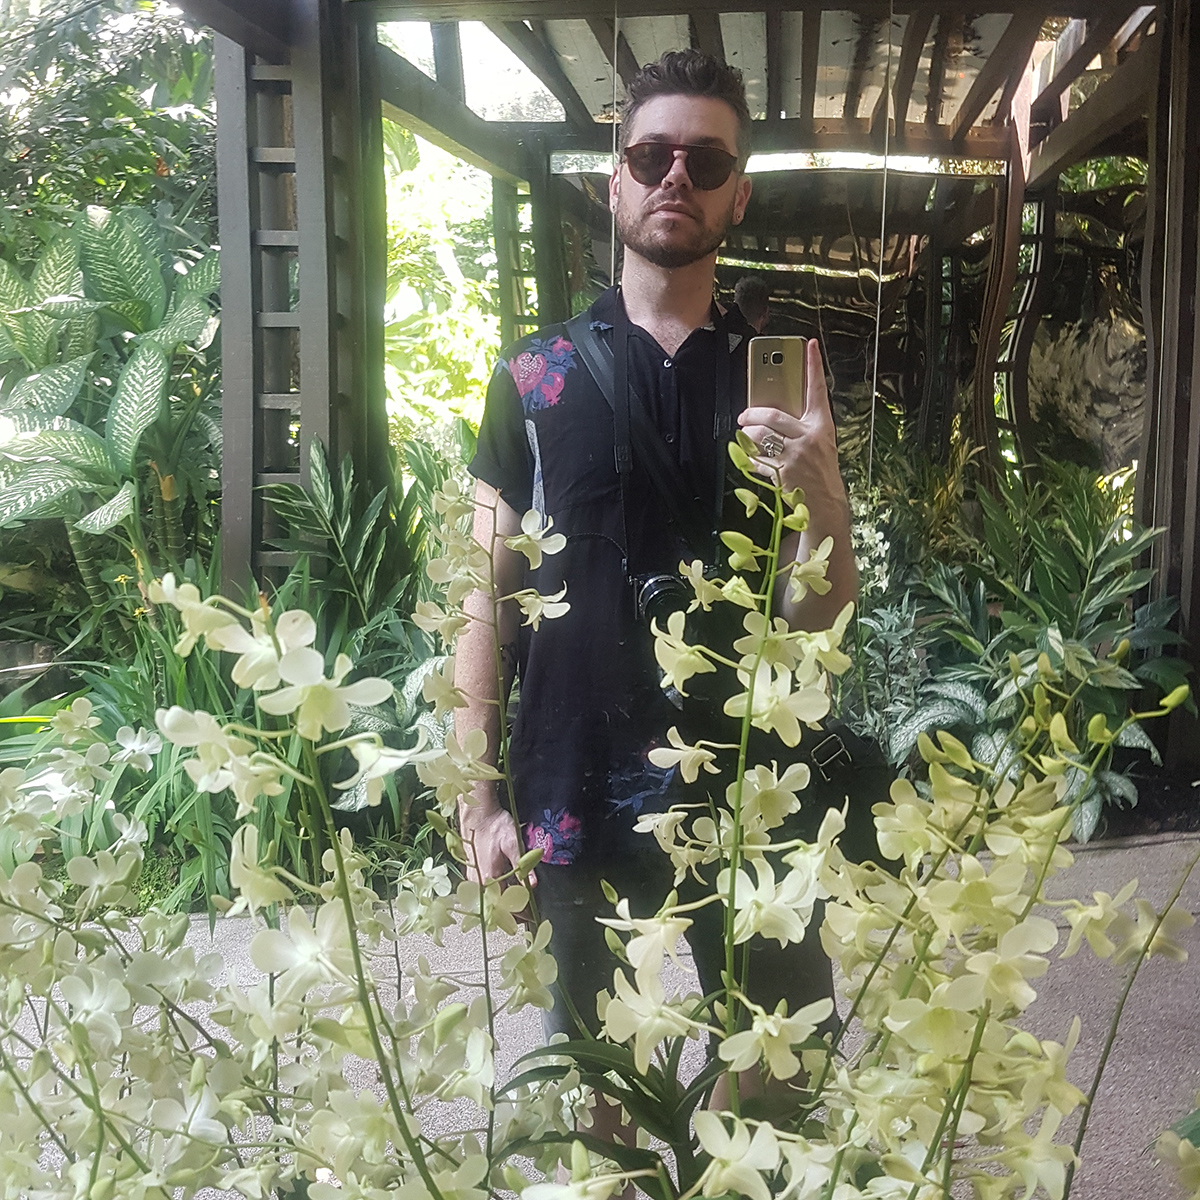 Dan Gladden, self portrait at Singapore Botanical Gardens, 2018. Image courtesy of the artist.